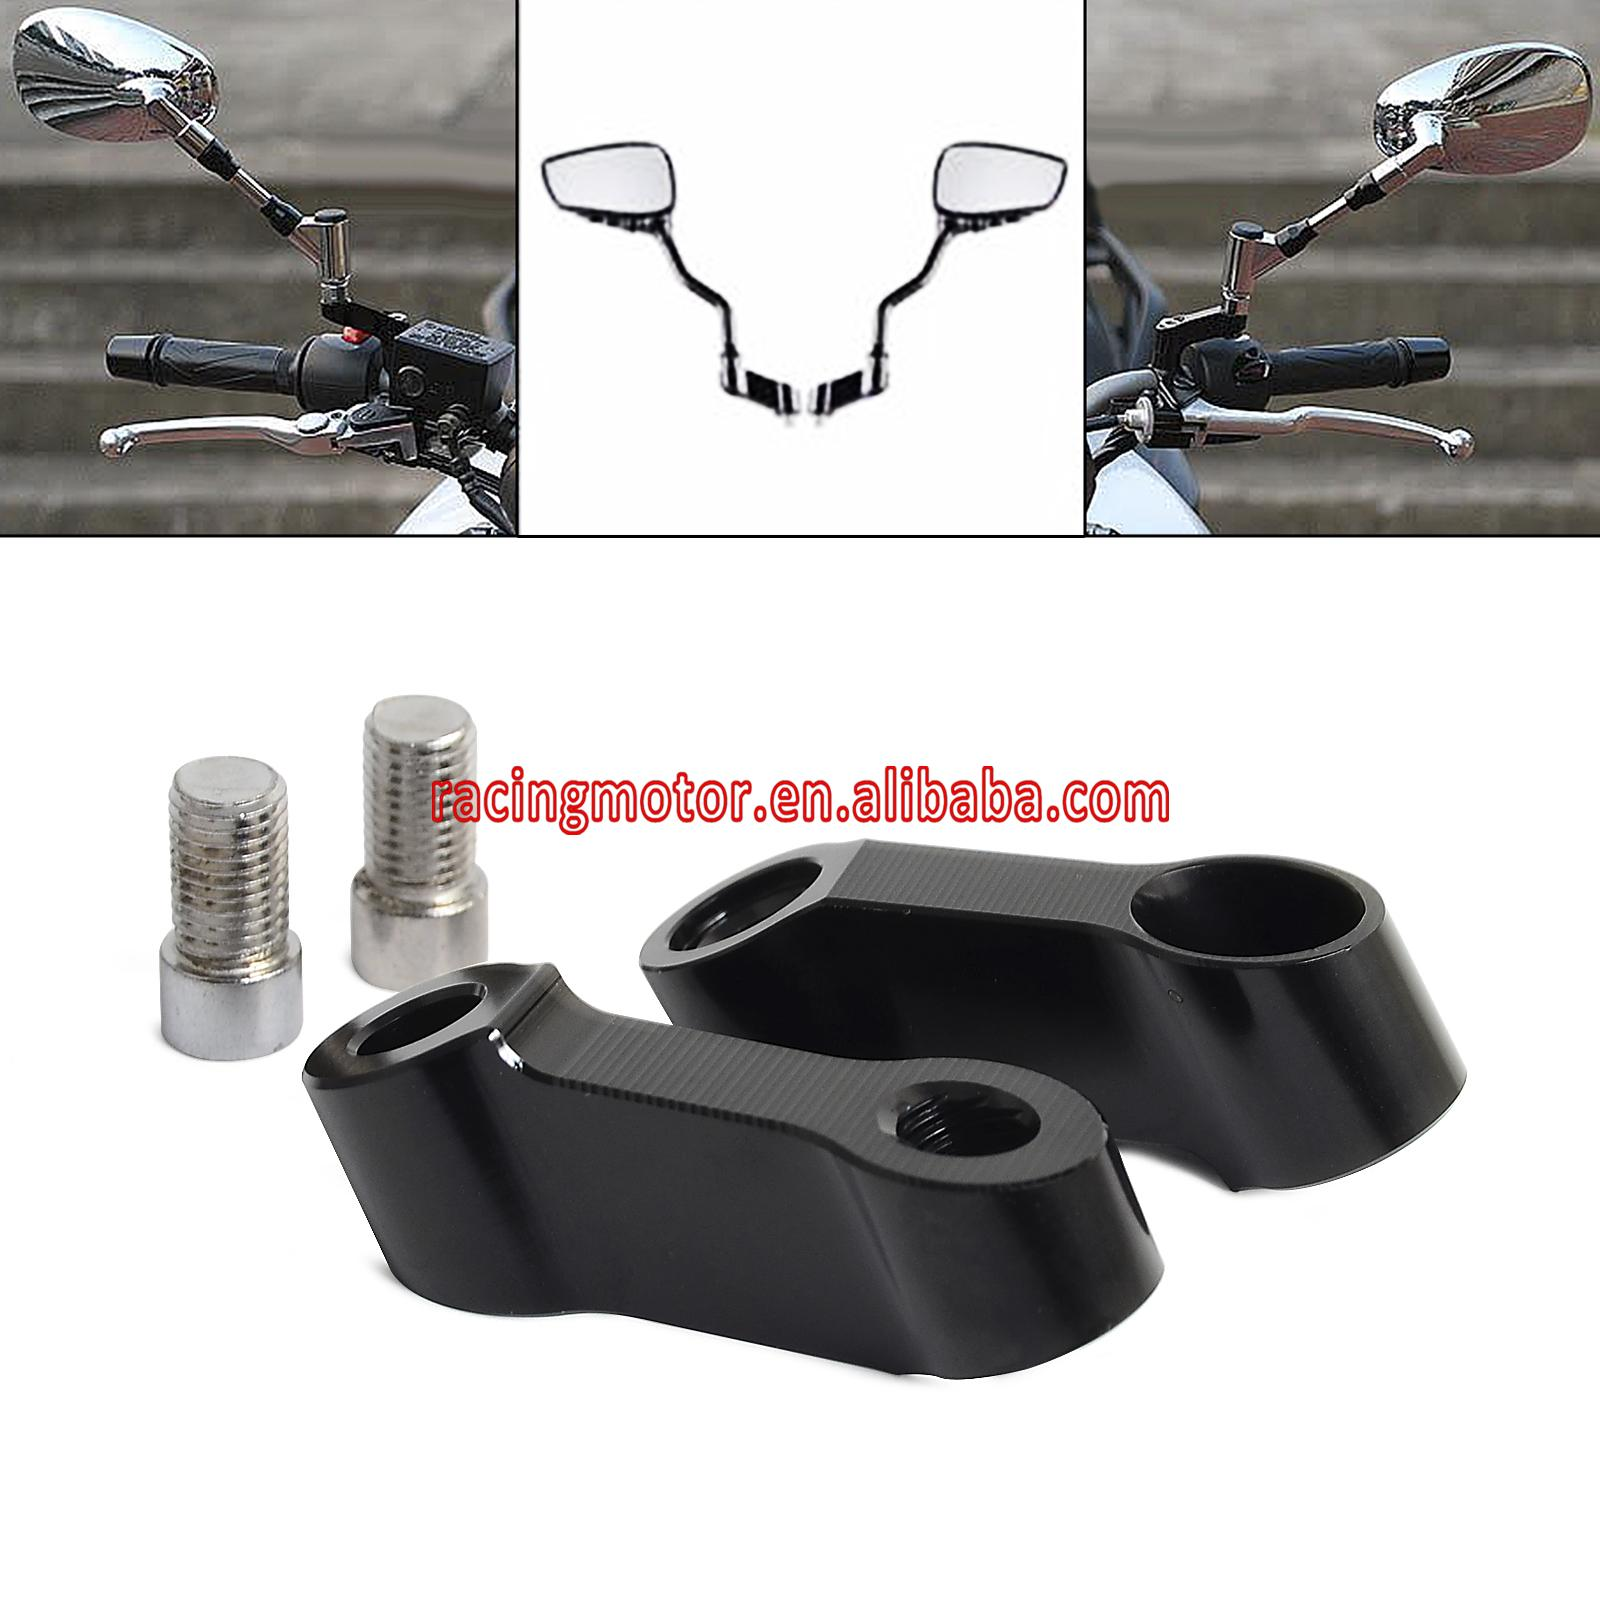 Black Bolts Size 10mm Mirrors Extension Riser Extend Adapter For Yamaha MT-09 MT-07 Fazer FZ-09 V-max 1700 zoomer ruckus fi nps50 black engine frame extend extension kit with handle post